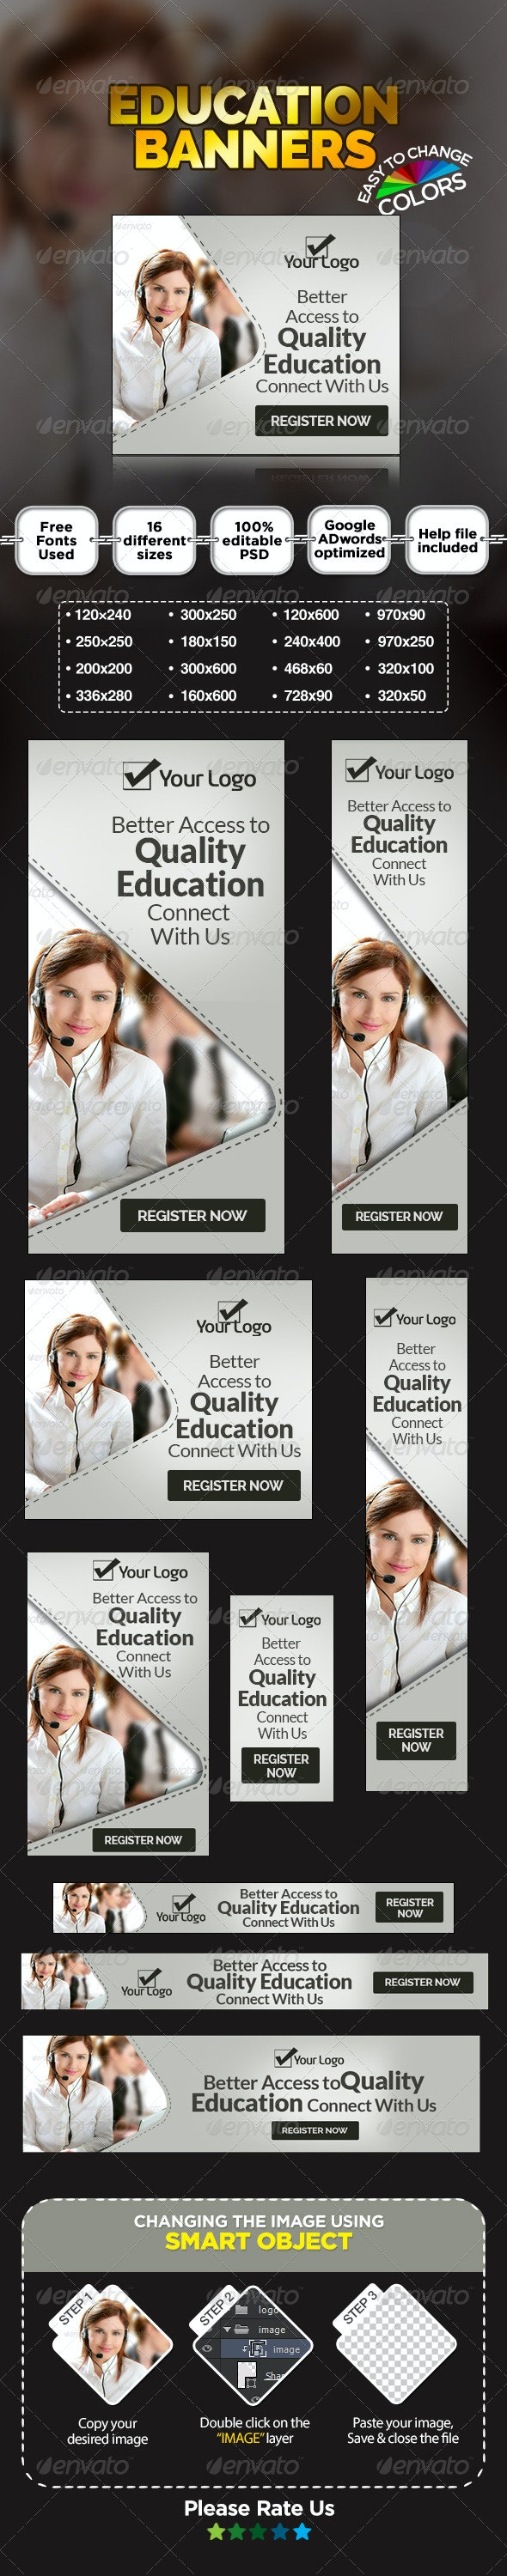 Online Education Banners - Banners & Ads Web Elements